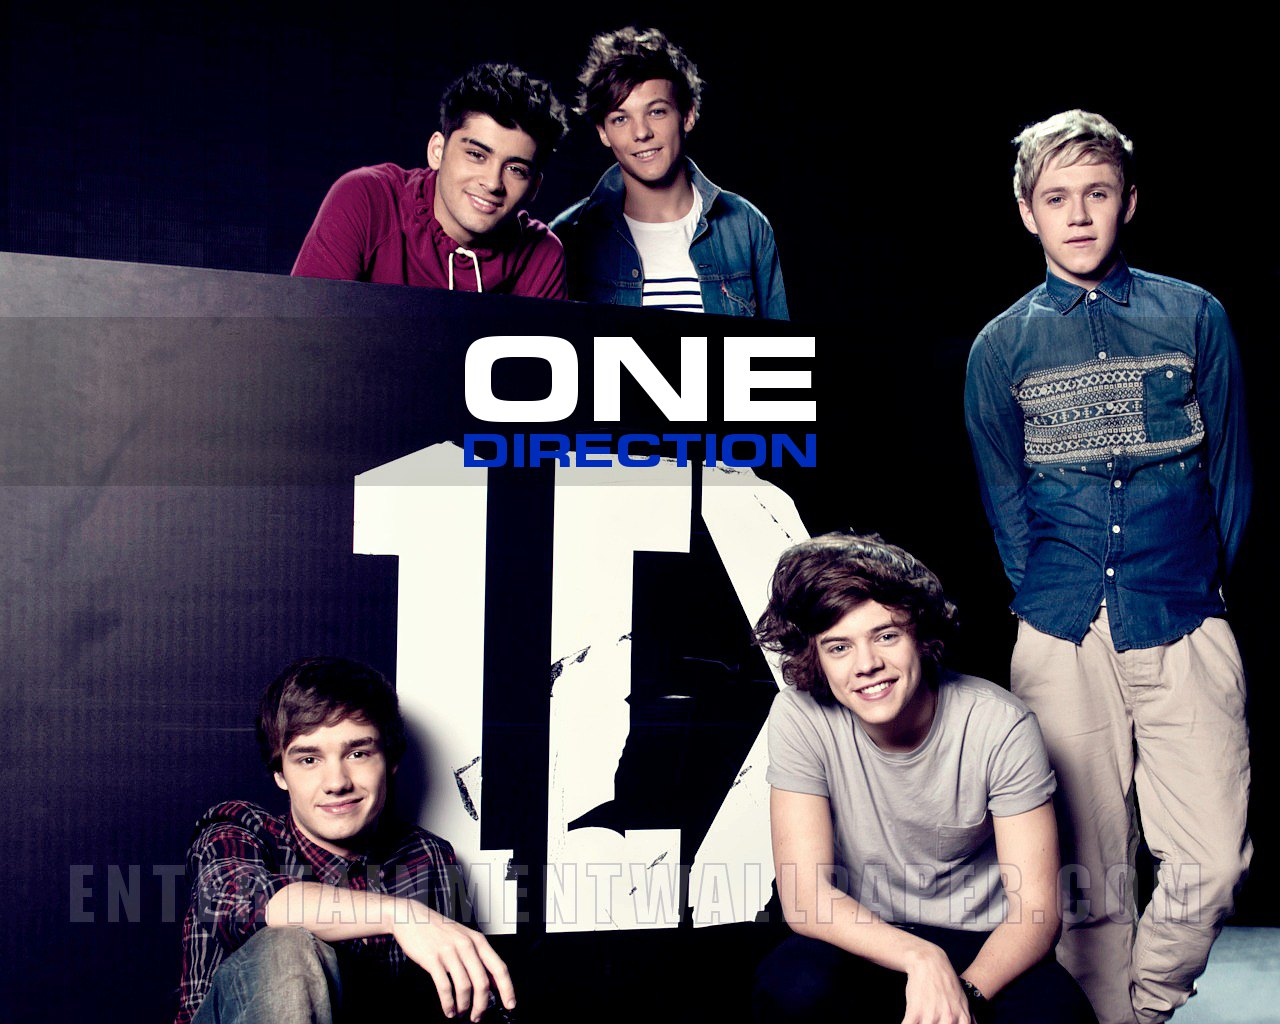 One Direction images One Direction Wallpaper HD wallpaper 1280x1024